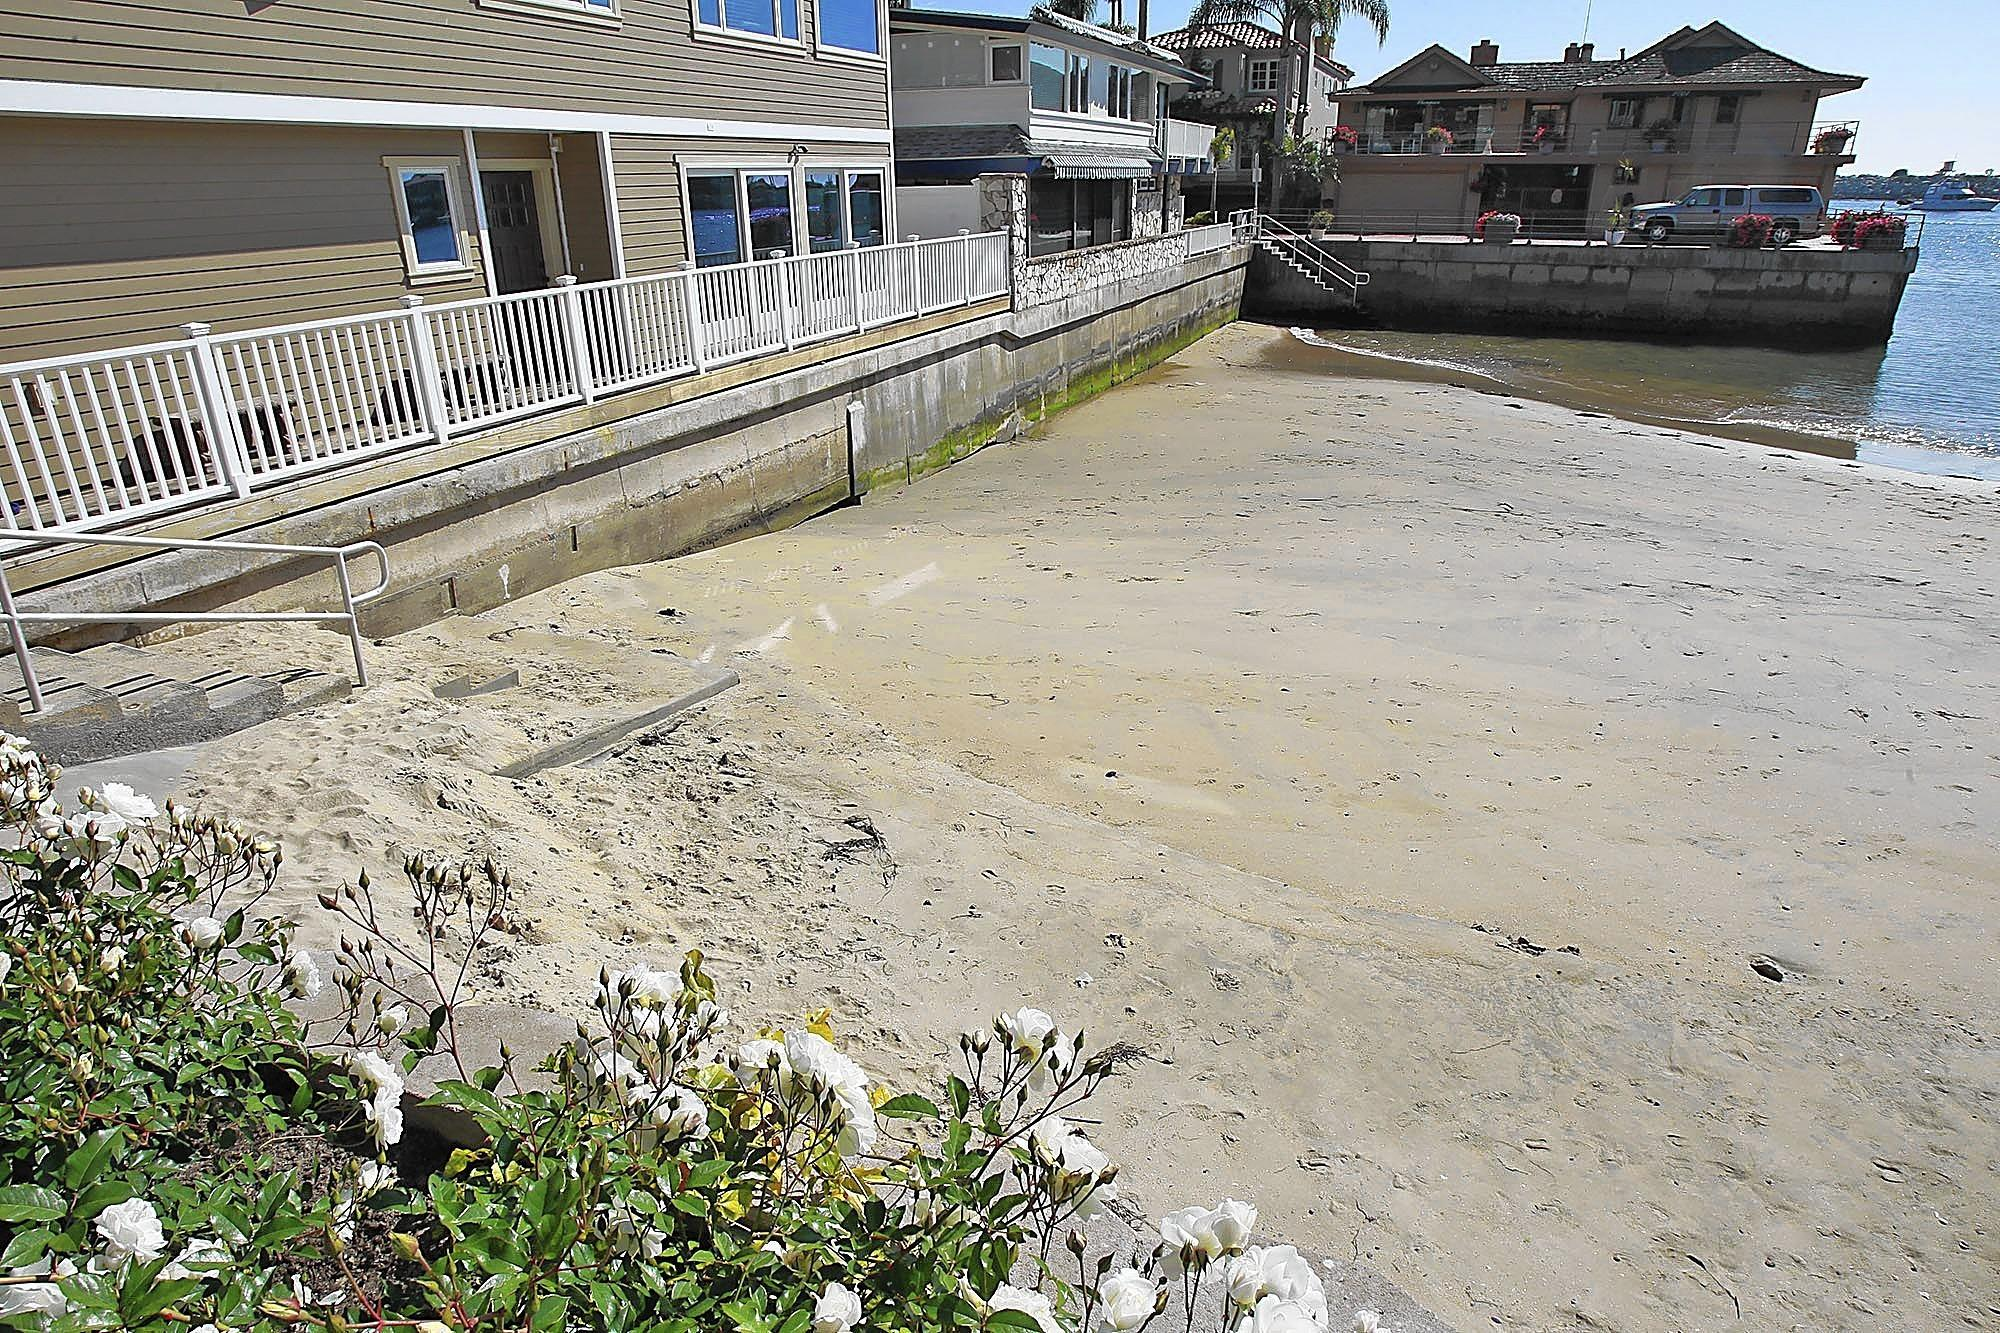 Sand has been eroding from China Cove at an alarming rate.